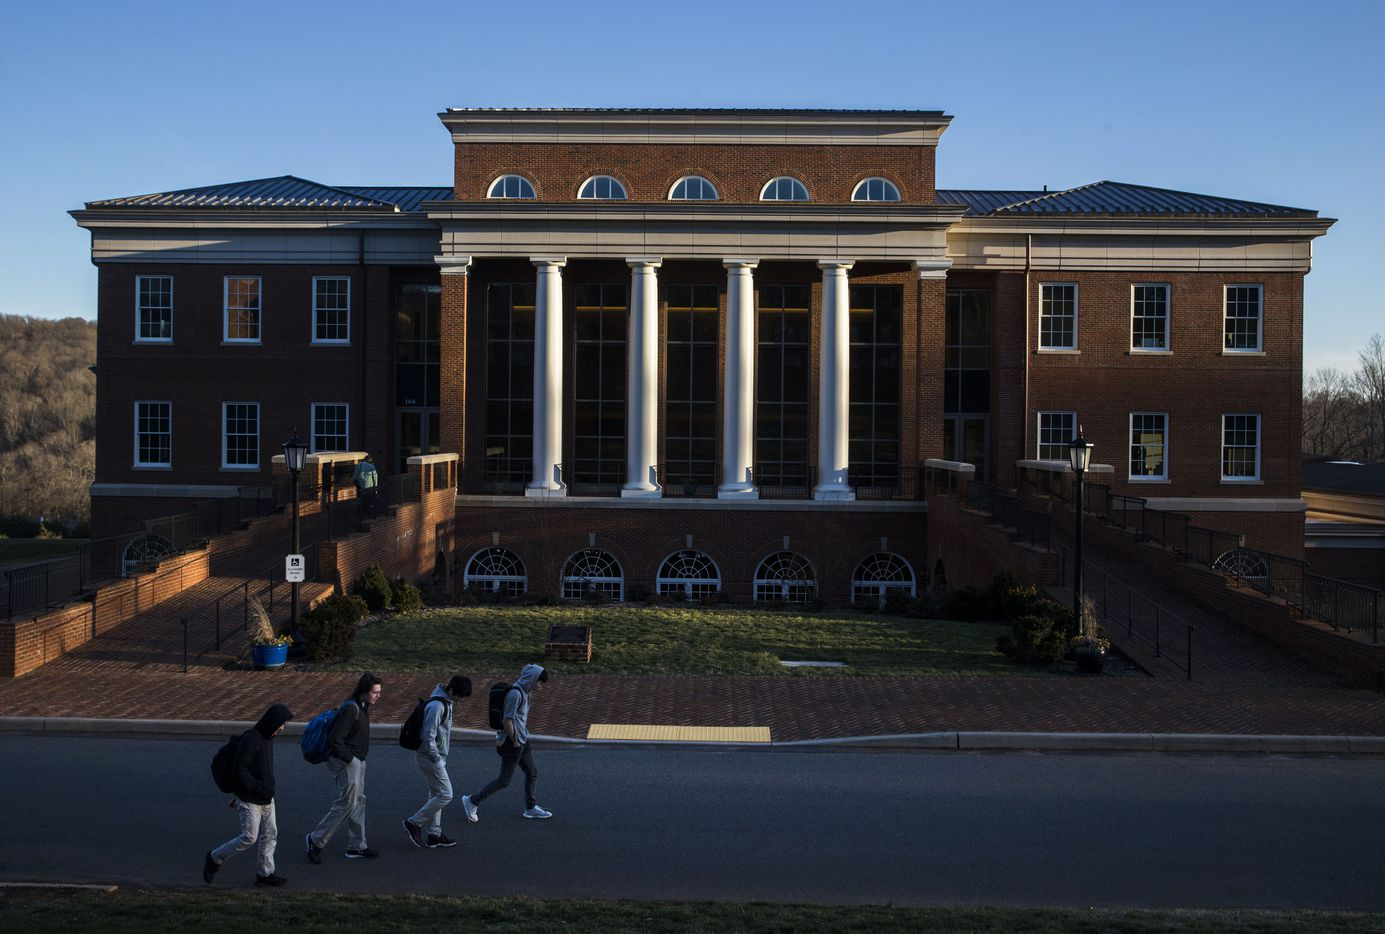 Students walk past Kenan Hall as sun descends at Woodberry Forest School in Orange, Va.